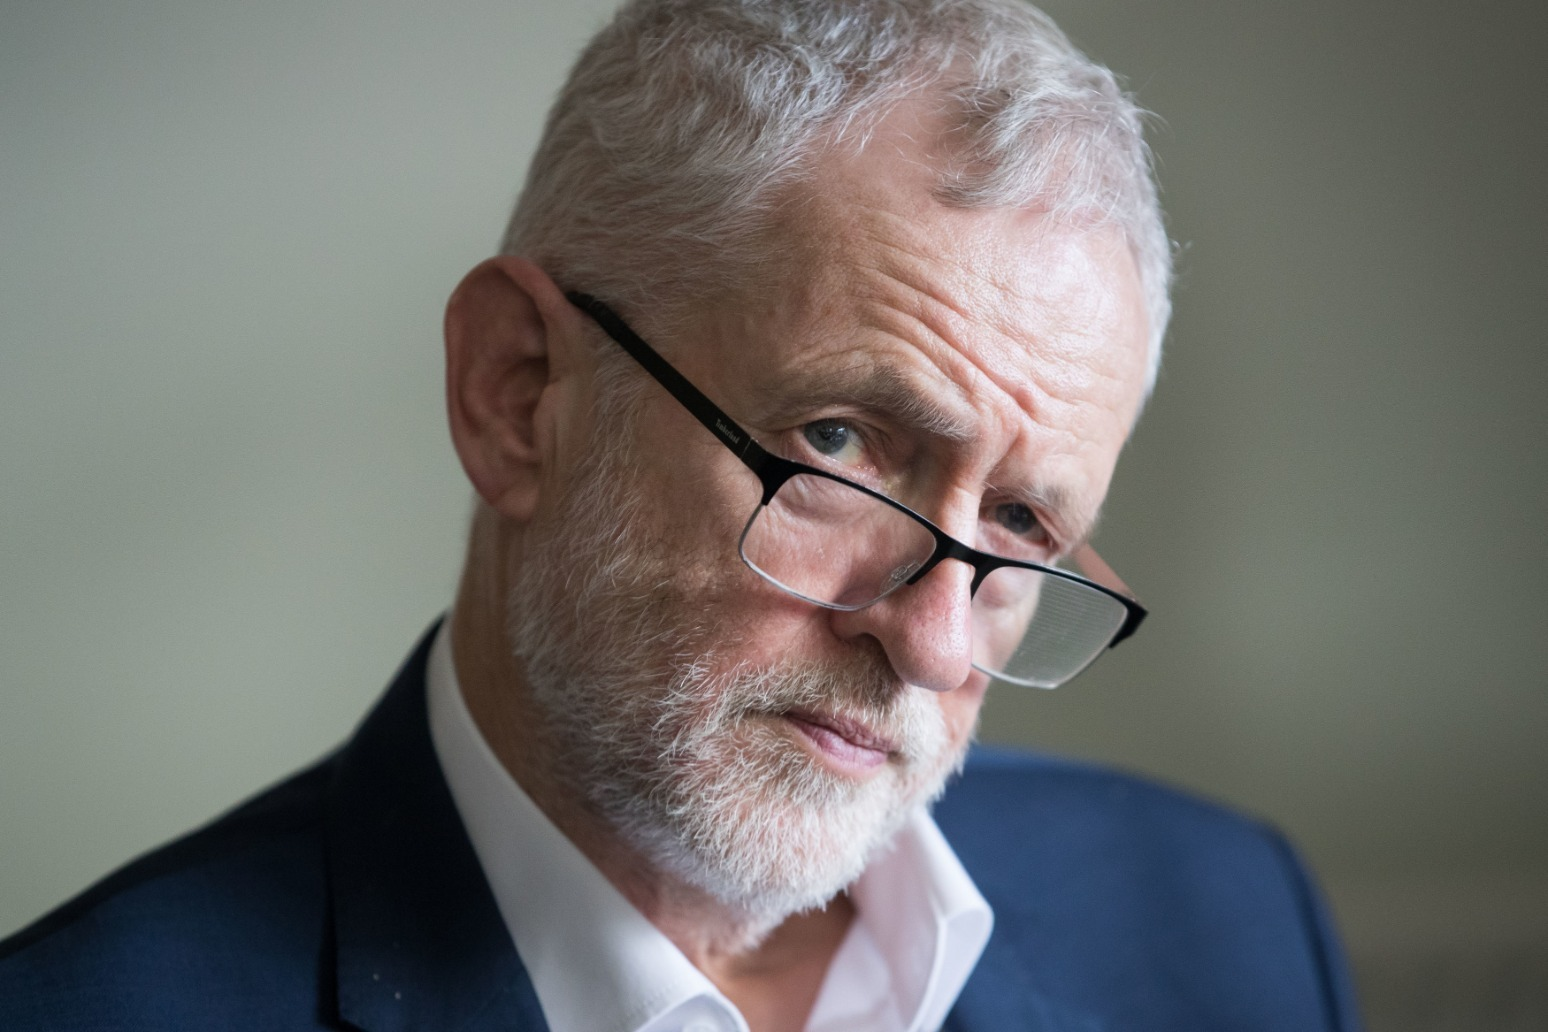 CORBYN ACCUSES TORIES OF BREXIT \'HIJACK\' TO SELL OUT THE NHS